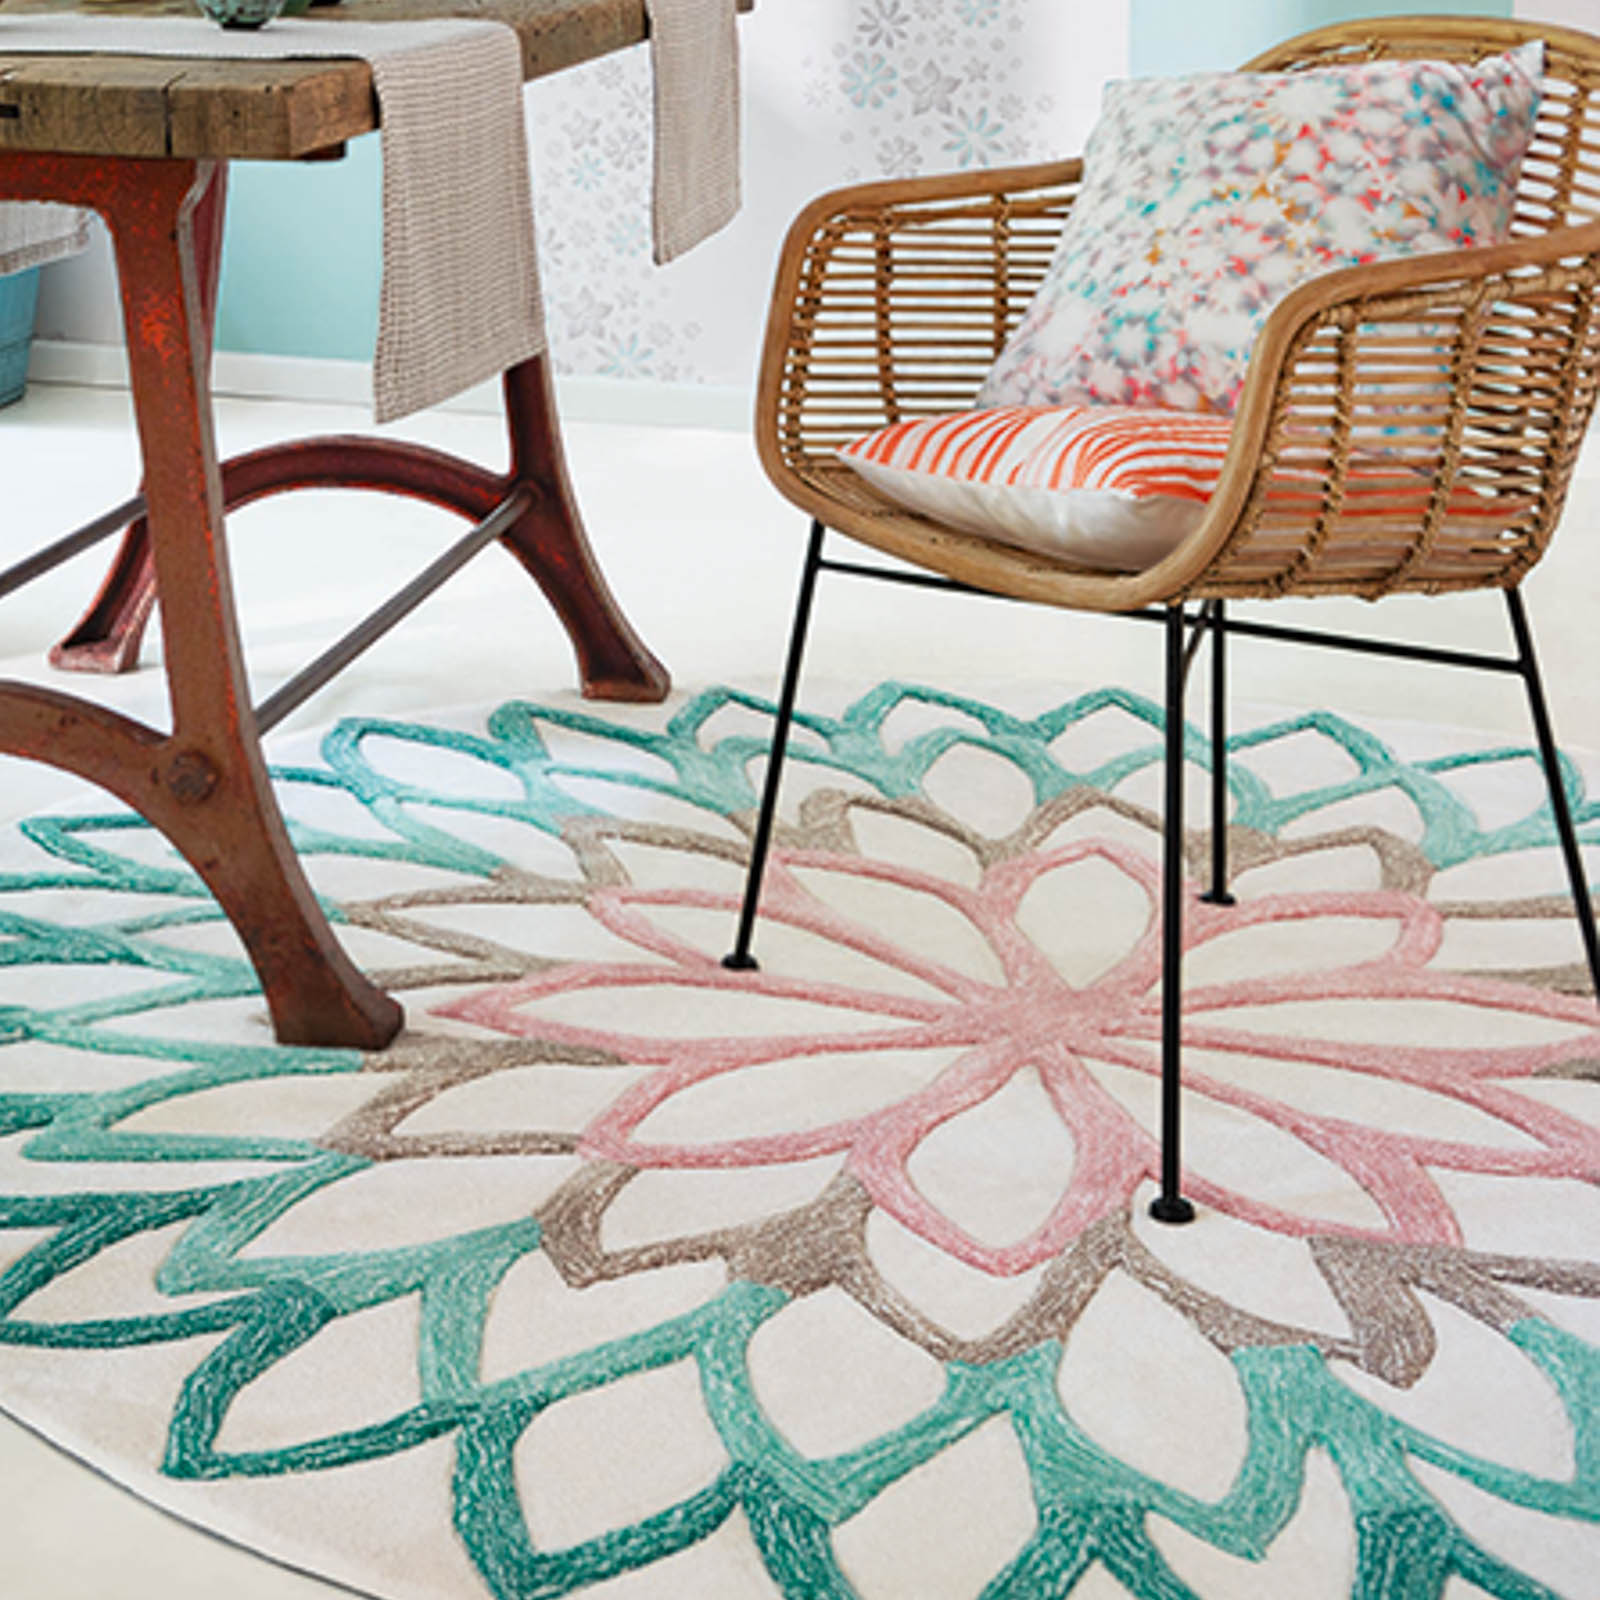 Lotus Flower Circular Rugs With Free Uk Delivery From The